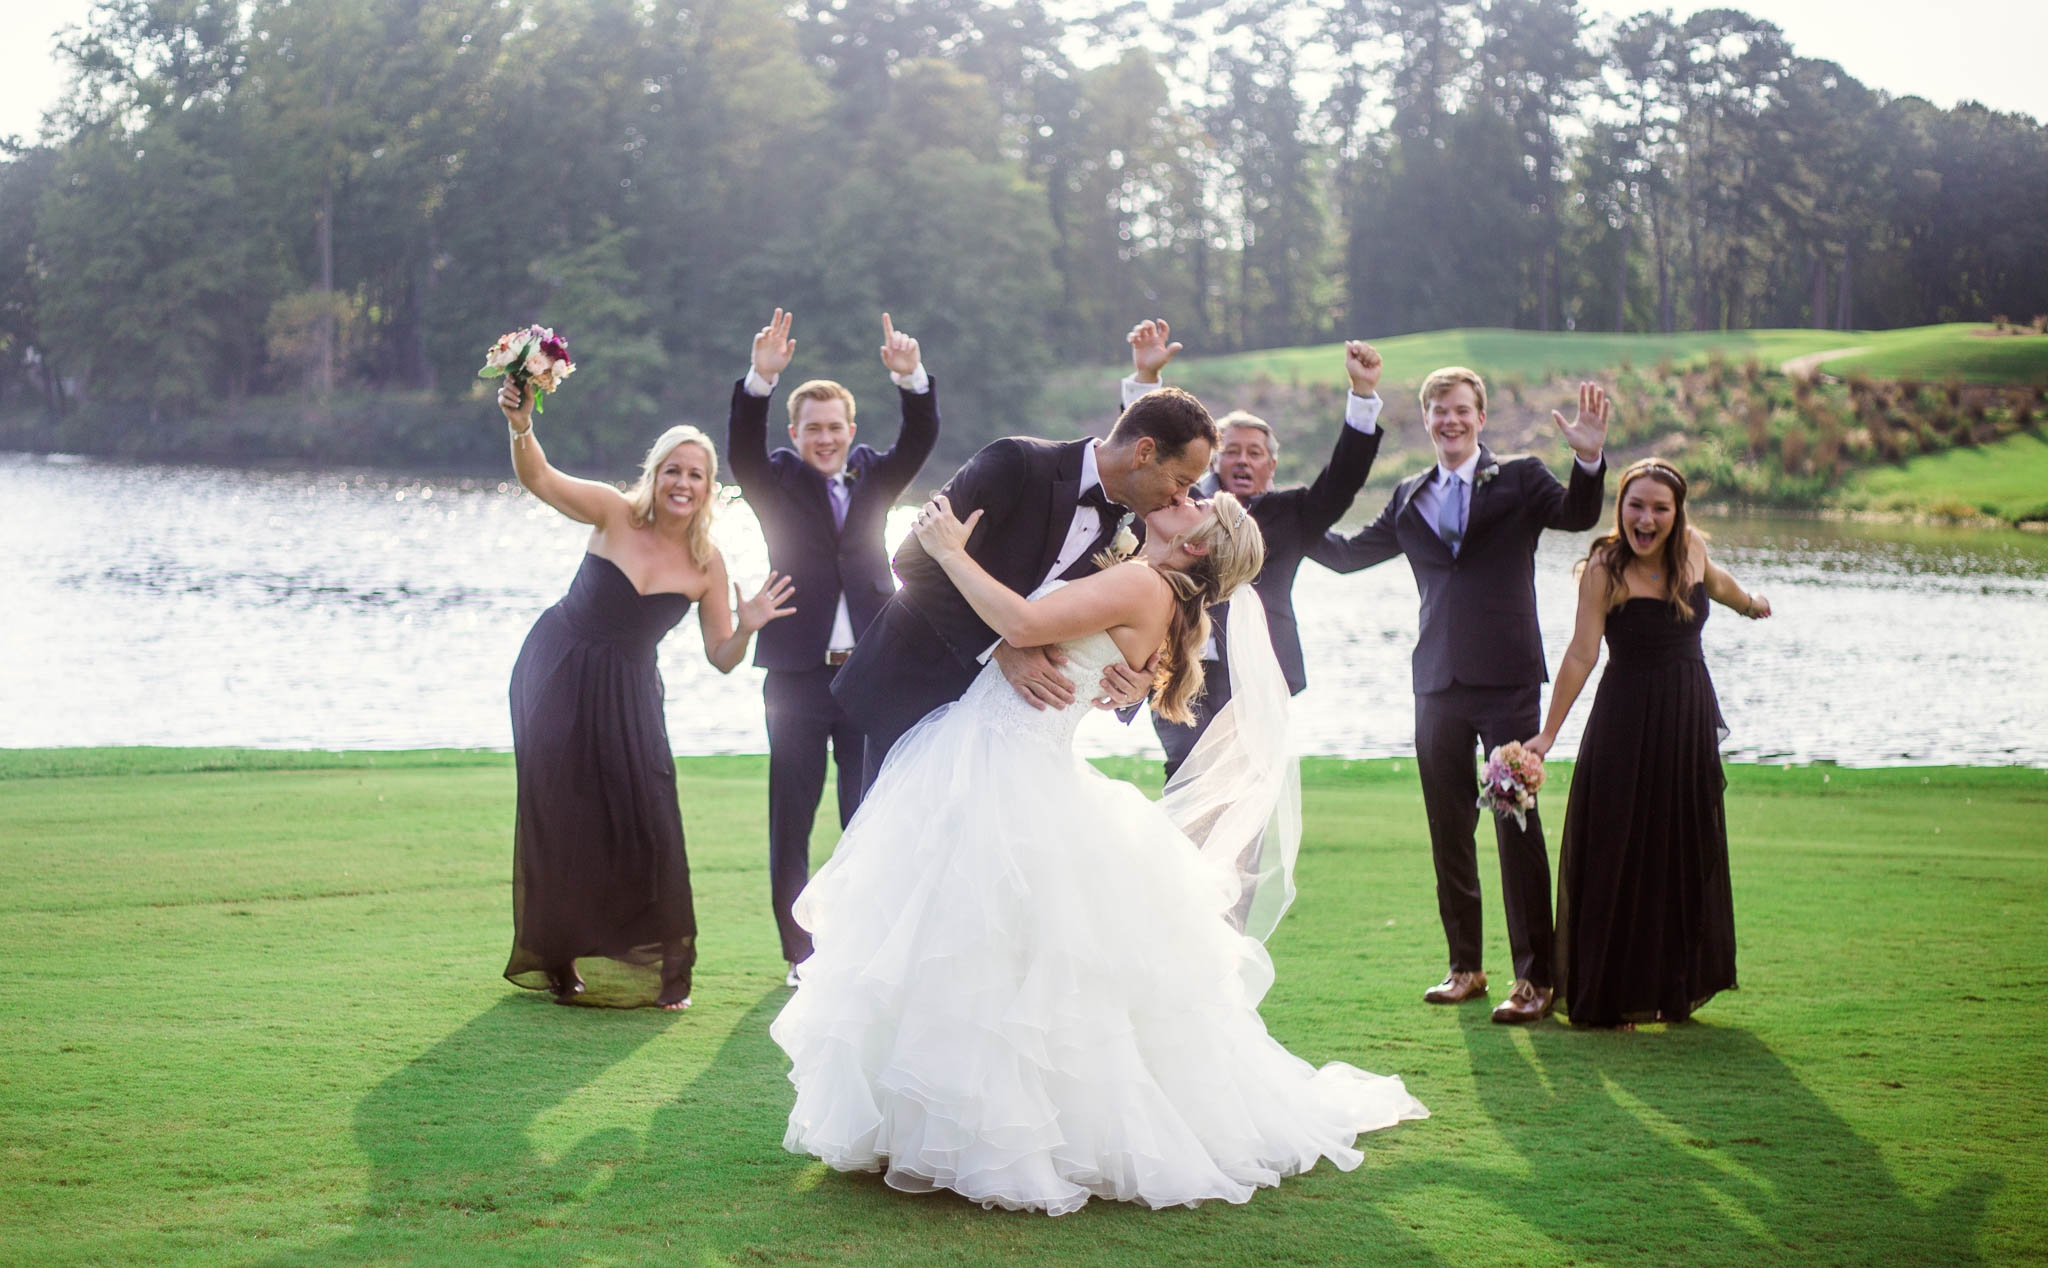 Wedding Party with Bride and Groom - Dona + Doug - MacGregor Downs Country Club in Cary, NC - Raleigh Wedding Photographer